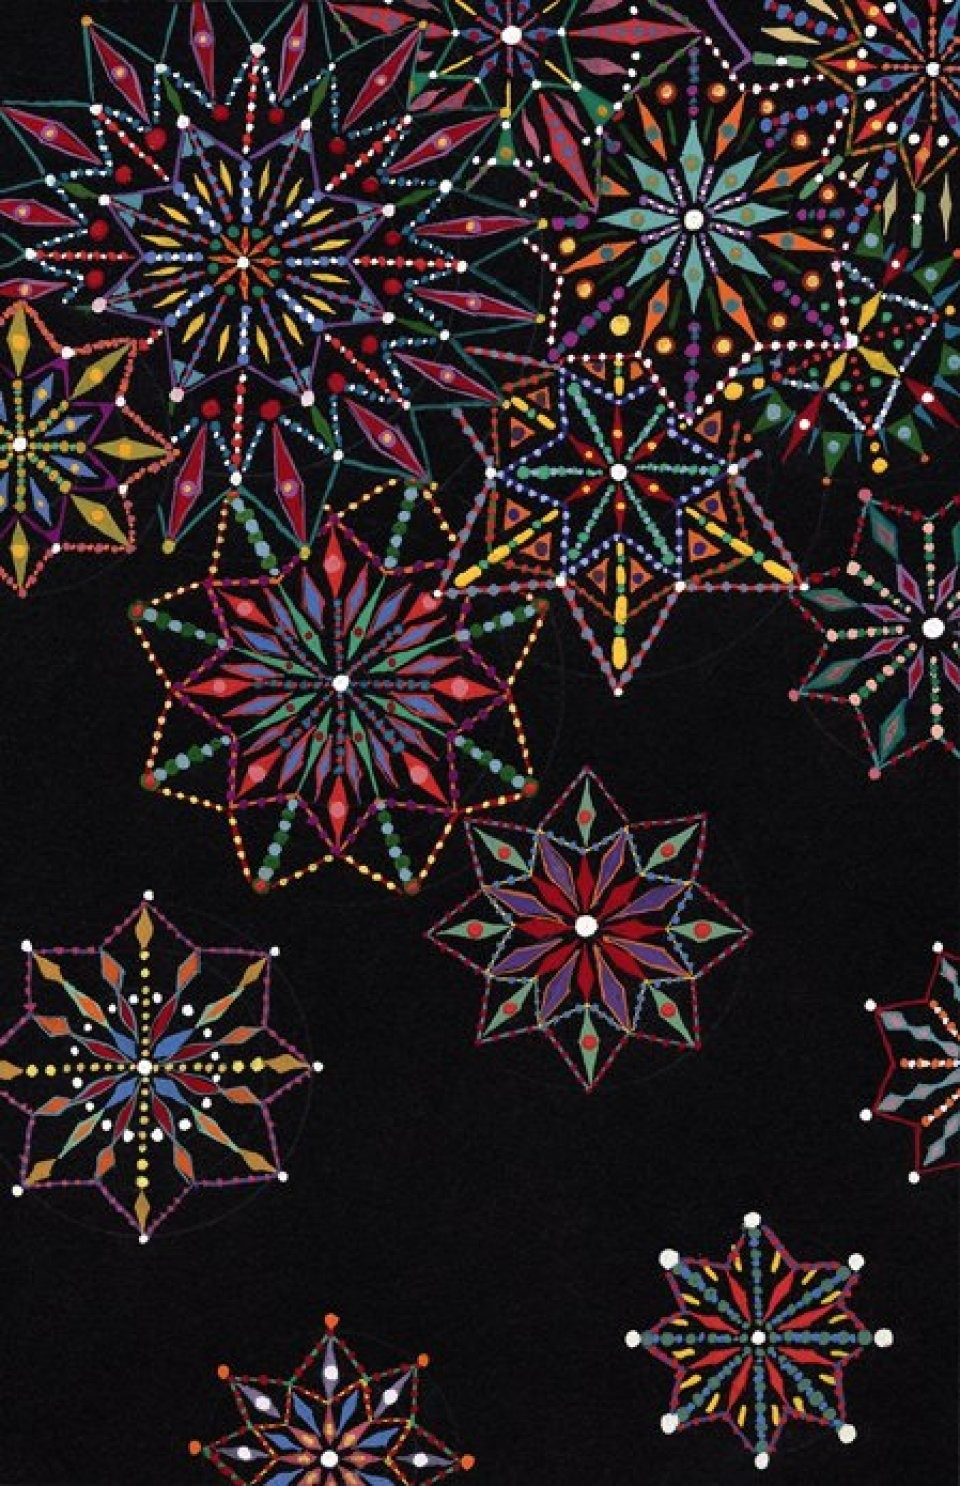 Fred Tomaselli, Untitled